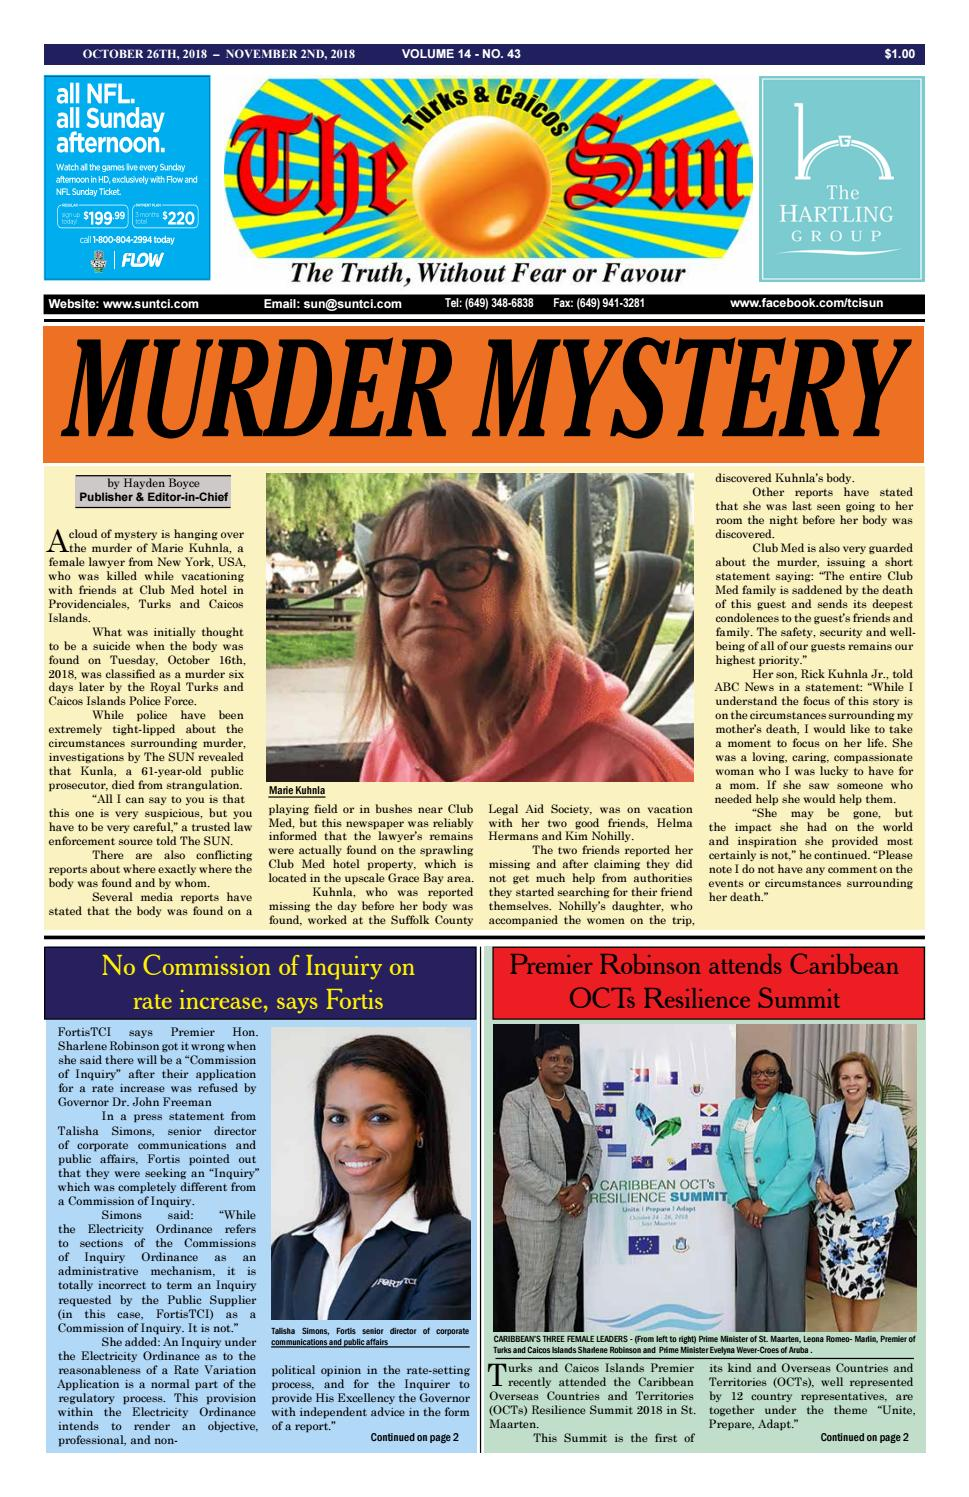 VOLUME 14 ISSUE 43 by The SUN Newspaper - issuu